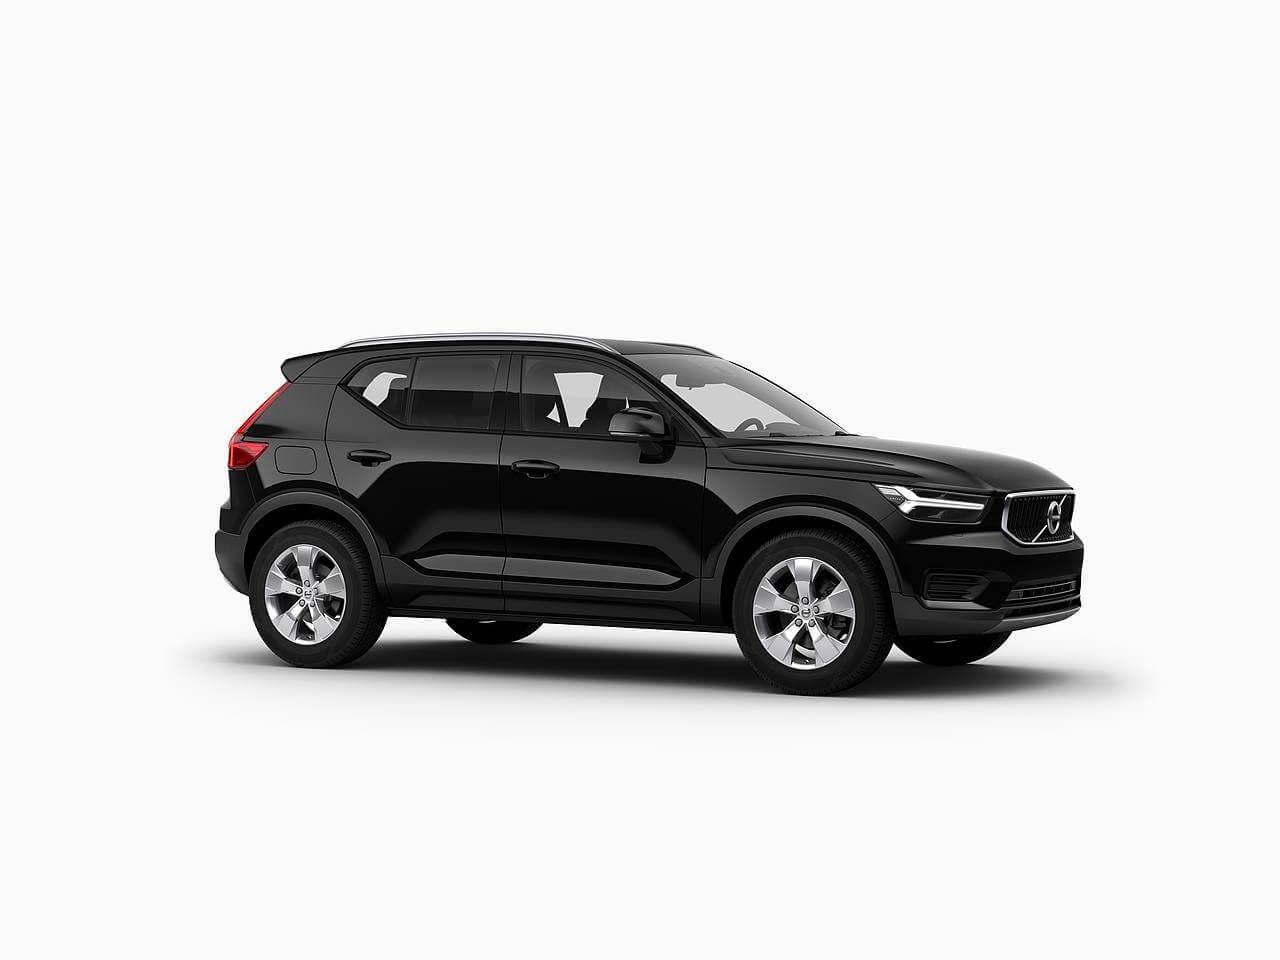 volvo xc40 leasing f r 278 euro im monat brutto 198 euro. Black Bedroom Furniture Sets. Home Design Ideas